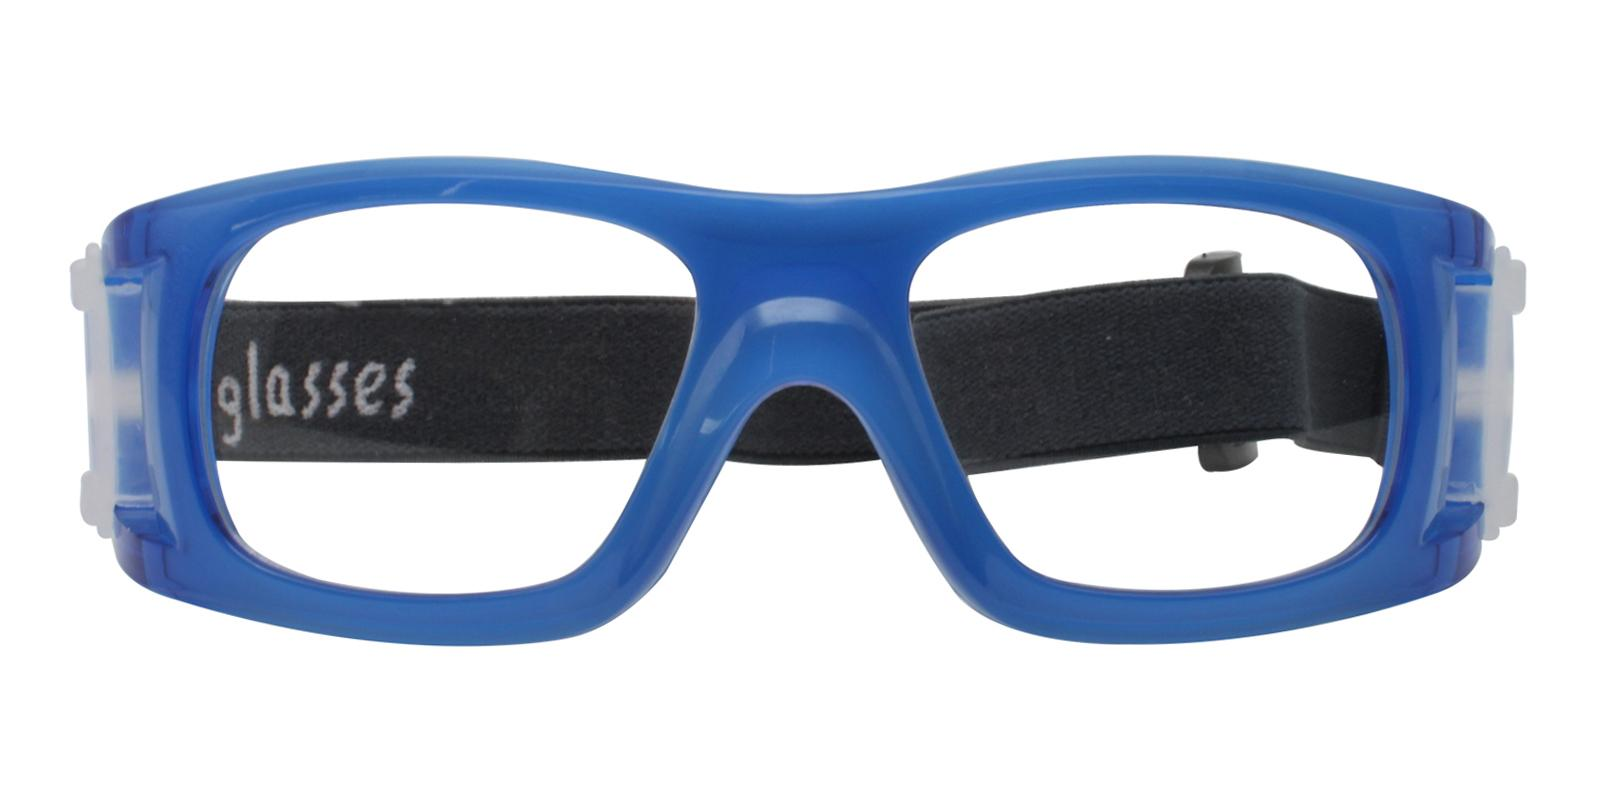 Christopher Blue Plastic NosePads , SportsGlasses Frames from ABBE Glasses